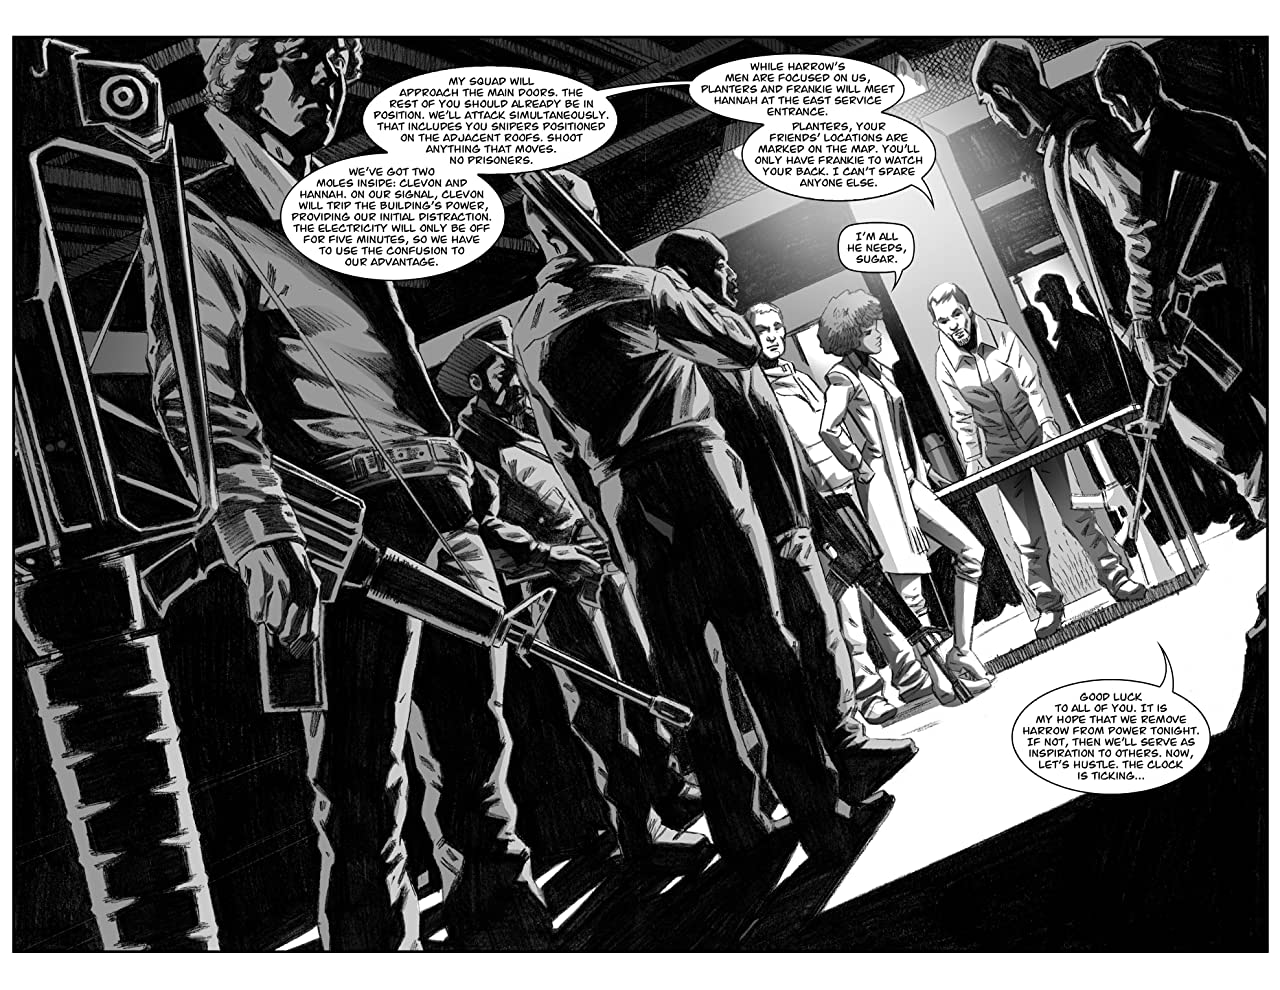 The Last Zombie: The End #2 (of 5)